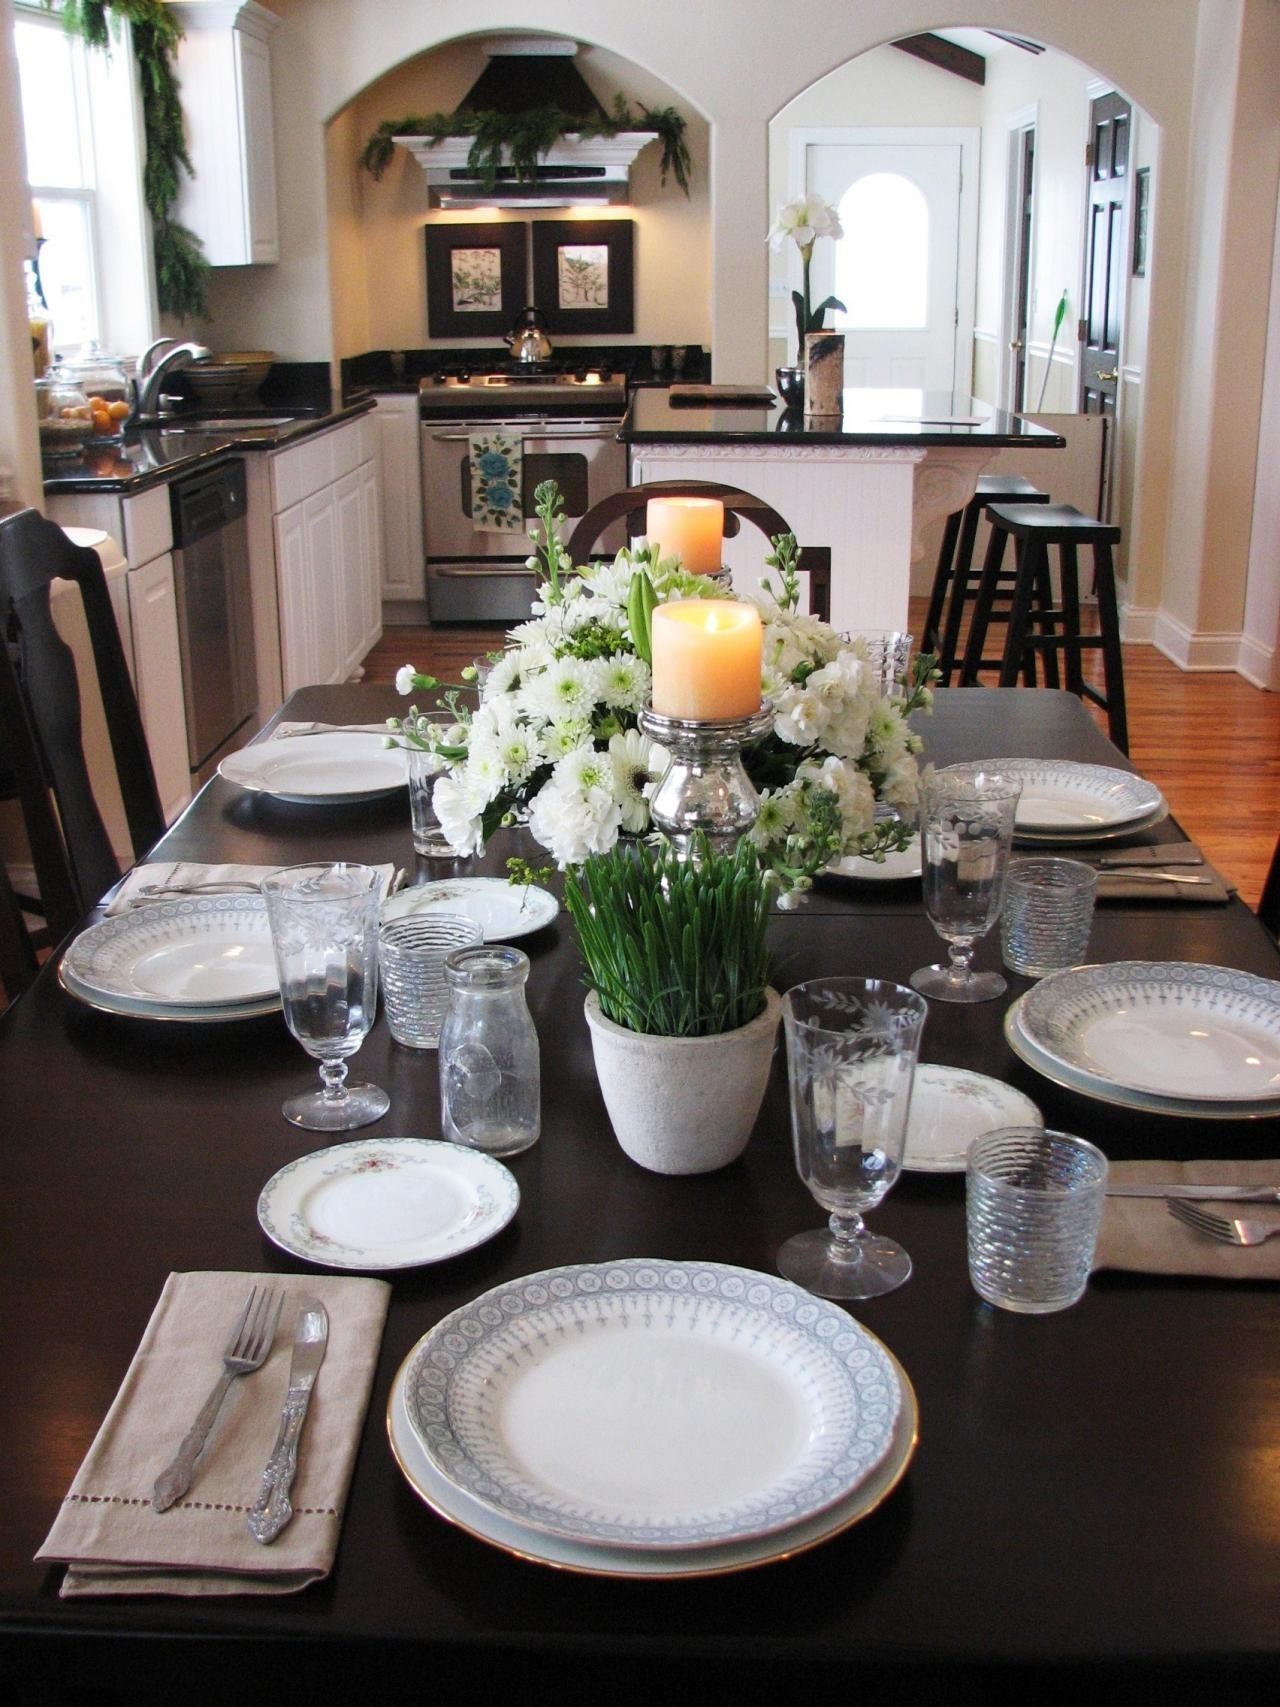 10 Stunning Everyday Kitchen Table Centerpiece Ideas %name 2020